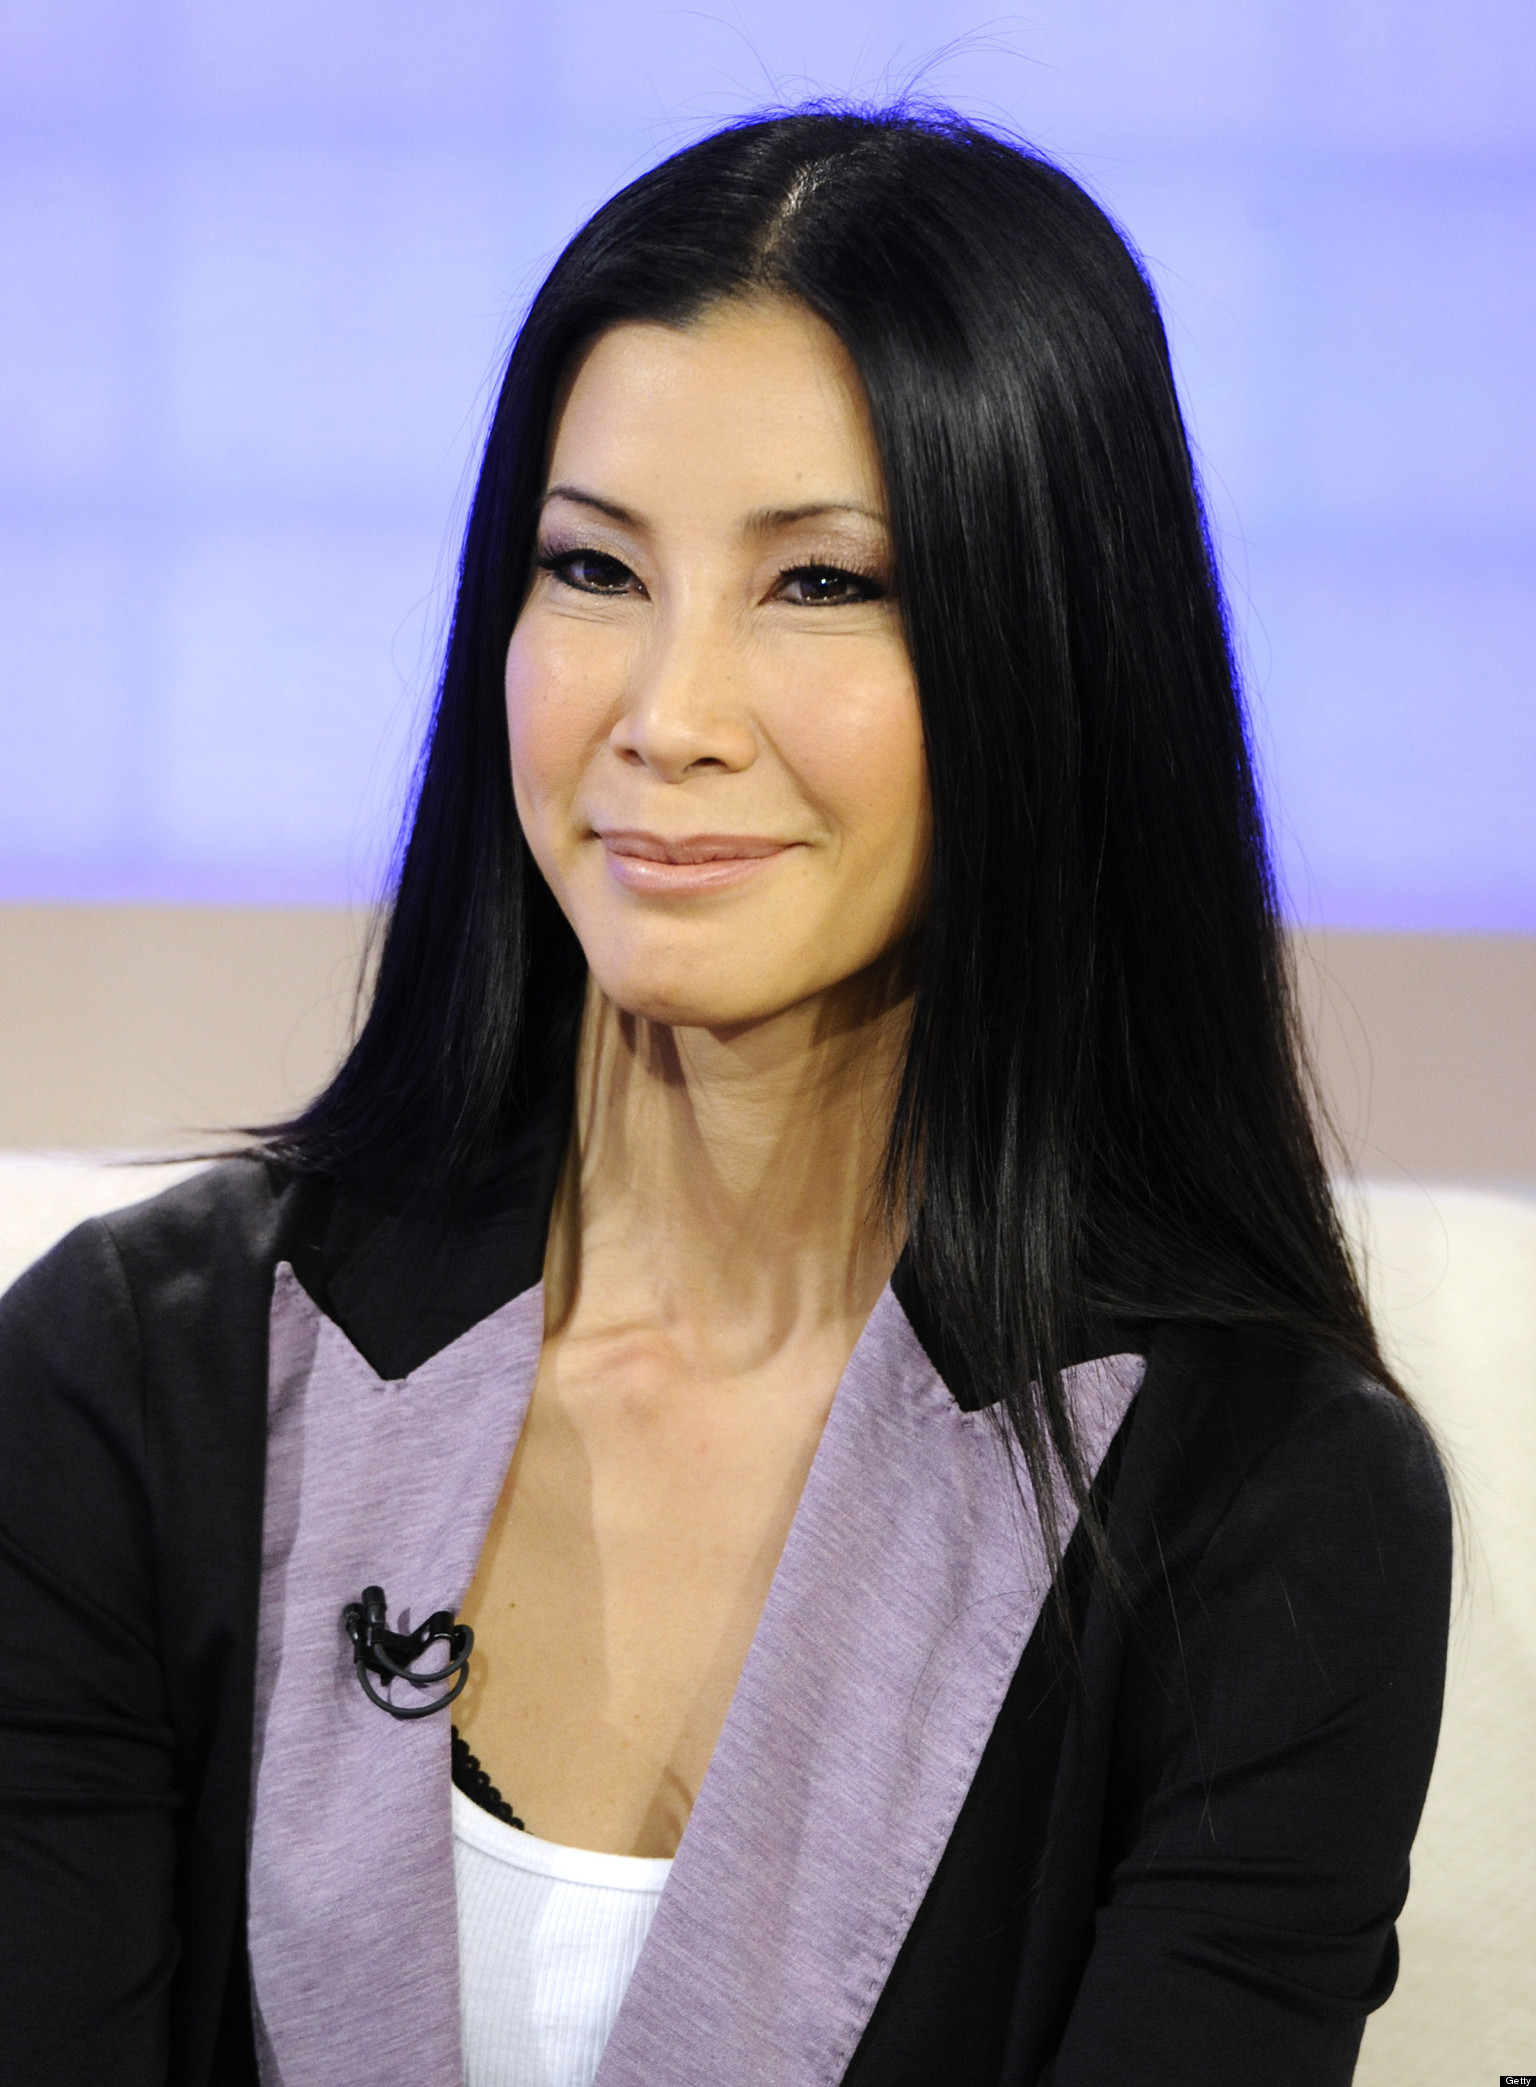 lisa ling sisterlisa ling family, lisa ling nationality, lisa ling documentary sugar babies, lisa ling, lisa ling this is life, lisa ling our america, lisa ling biography, lisa ling north korea documentary, lisa ling show, lisa ling wedding, lisa ling north dakota, lisa ling house, lisa ling cnn, lisa ling husband, lisa ling sister, lisa ling net worth, lisa ling north korea, lisa ling baby, lisa ling plastic surgery, lisa ling instagram